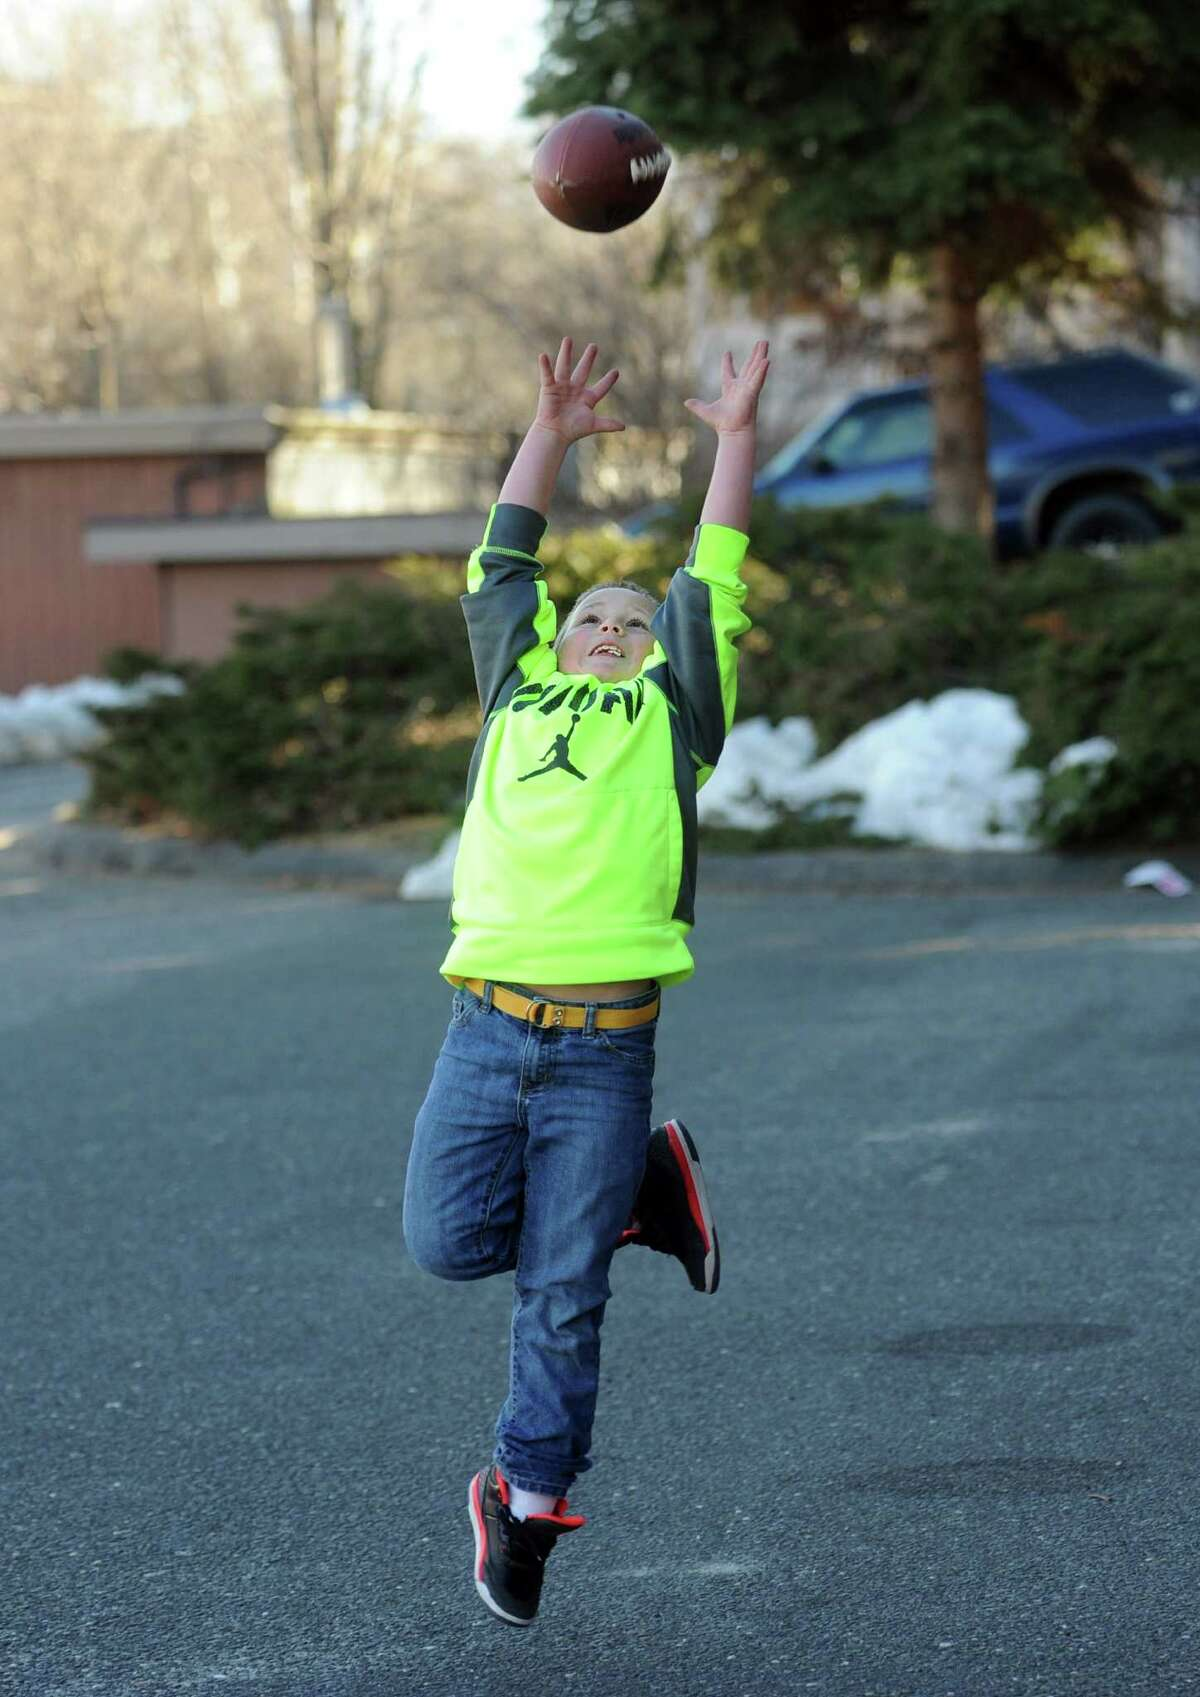 Nine-year-old Julian Basta, of Shelton, practices his passing and catching game with his father Tuesday, Mar. 18, 2014, at their home in Shelton, Conn. Basta has played for the Stratford Redskins for the past 5 years.